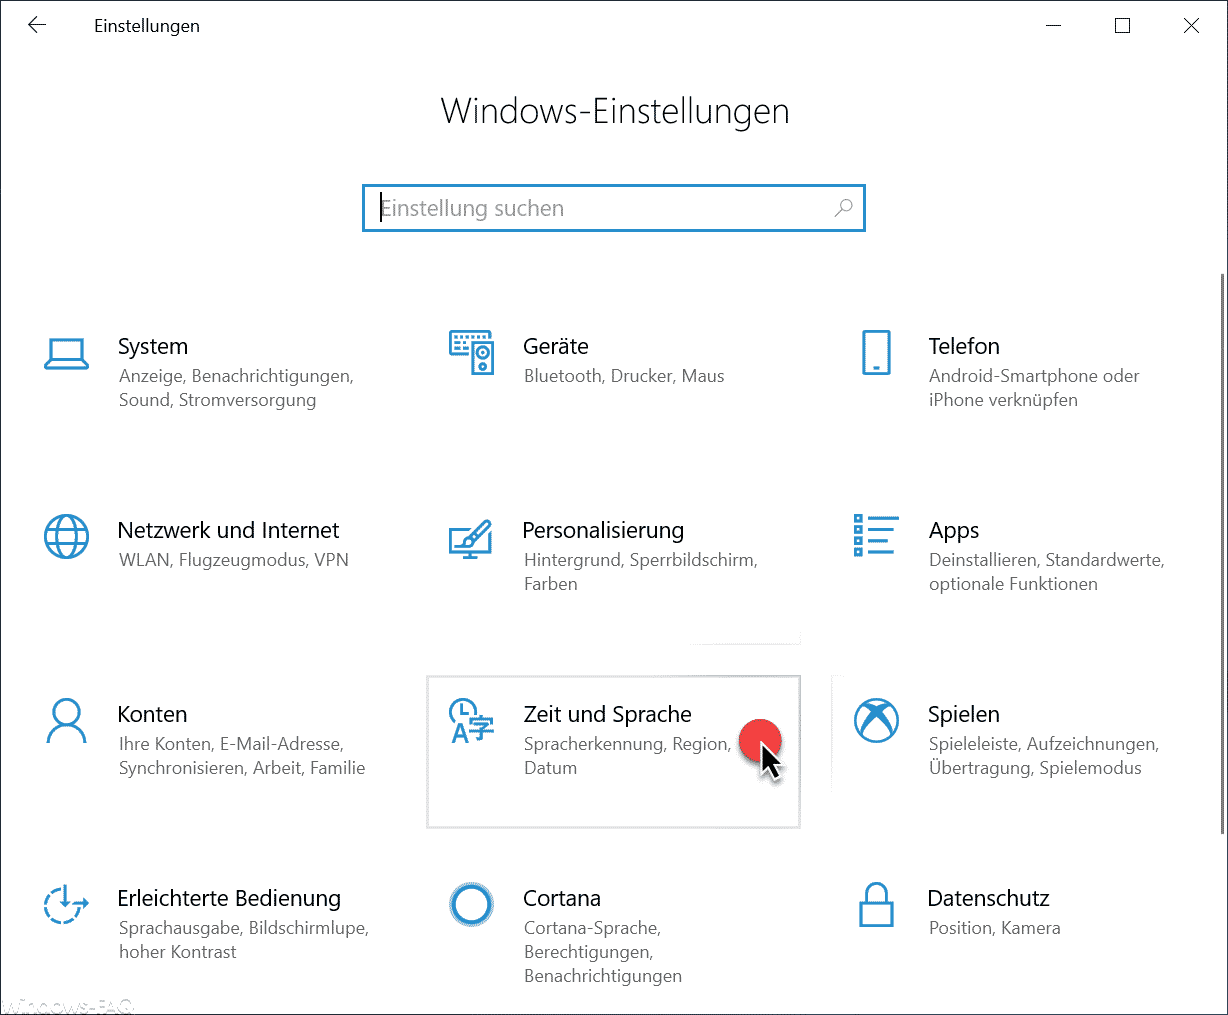 Zeit und Sprache, Spracherkennung, Region, Datum Windows 10